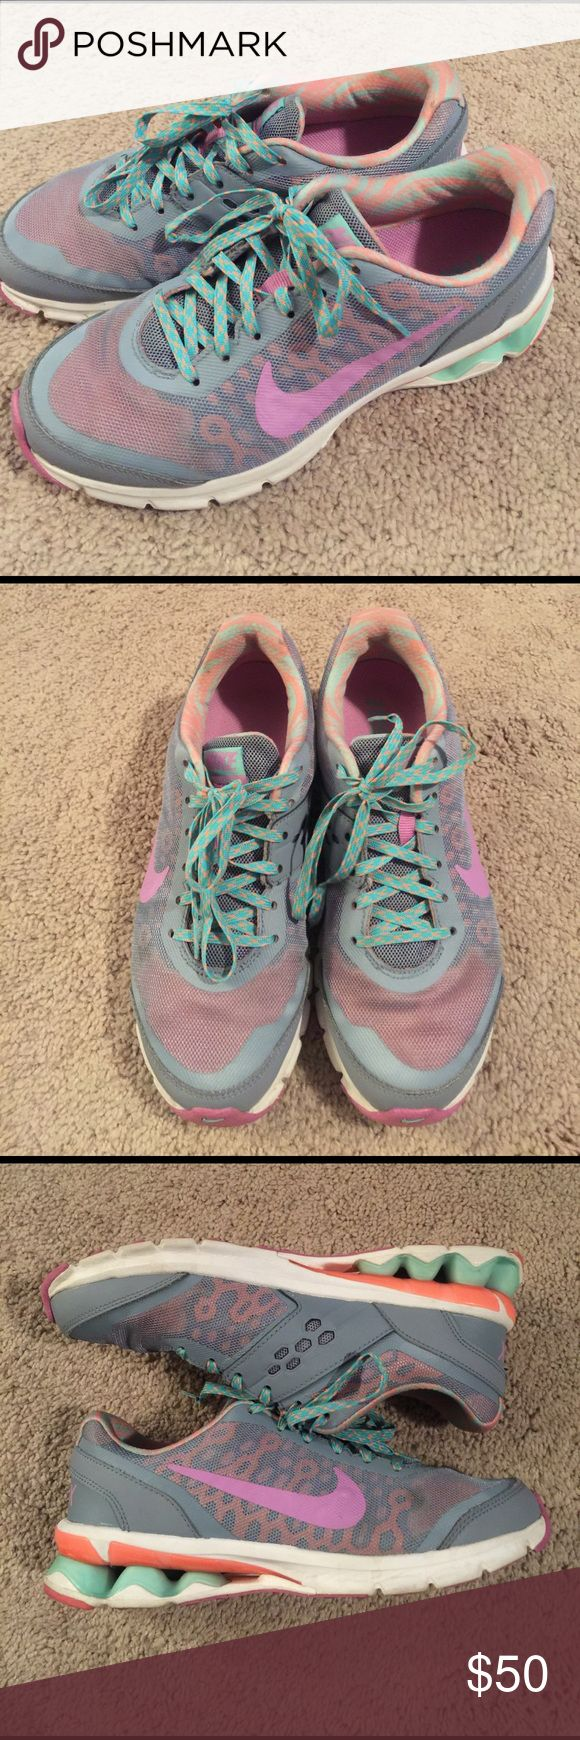 Nike Reax Sneakers Used, in great shape with lots of life left. Please see all photos. Colors are grey, purple, coral and teal. Any questions, please ask. Bundle for greater discount! Nike Shoes Athletic Shoes